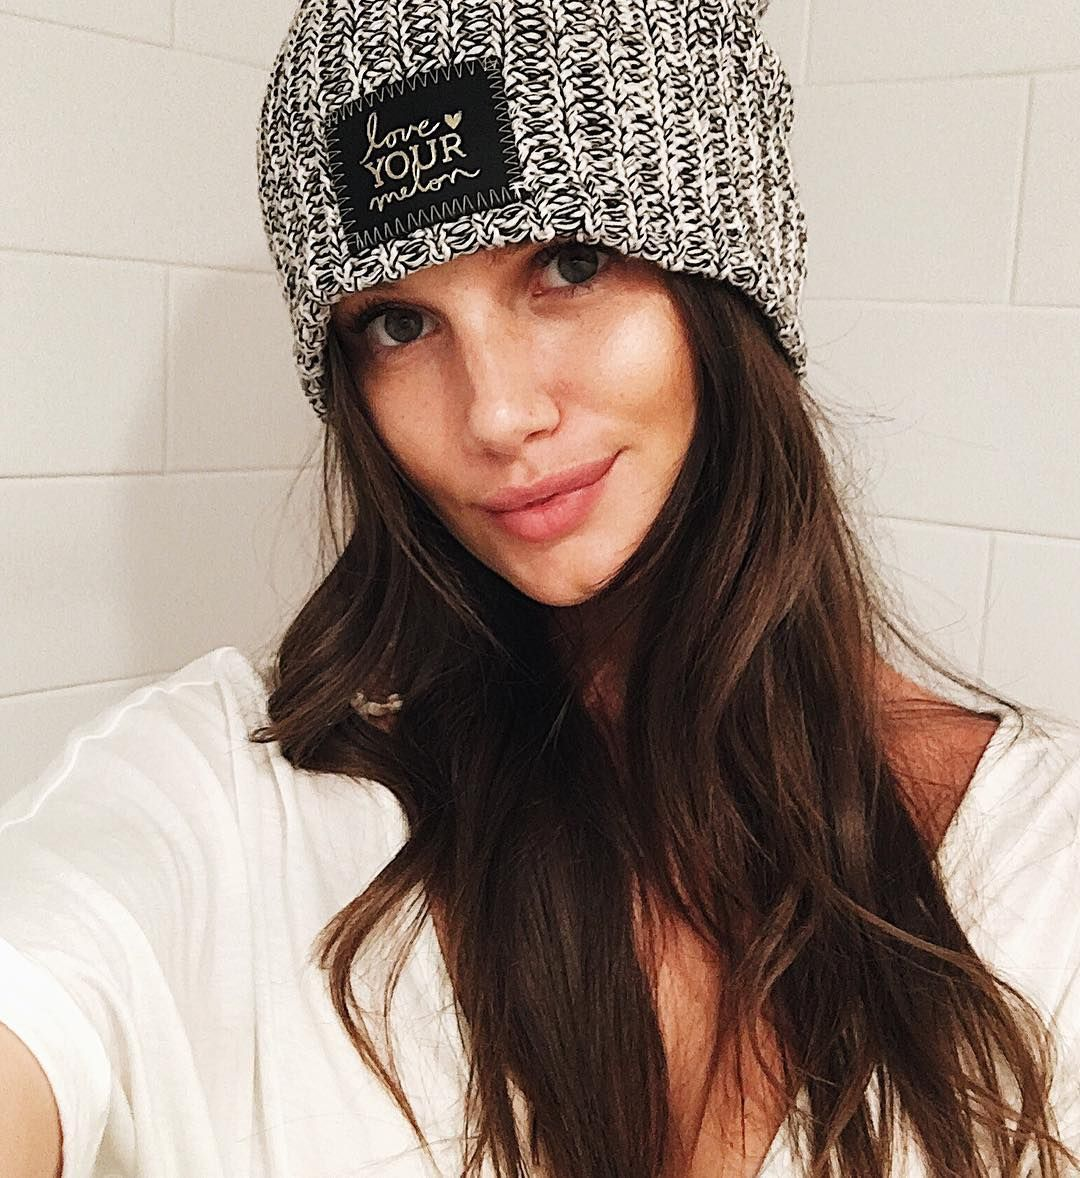 Instagram Hailey Outland naked (92 photos), Topless, Is a cute, Twitter, in bikini 2017